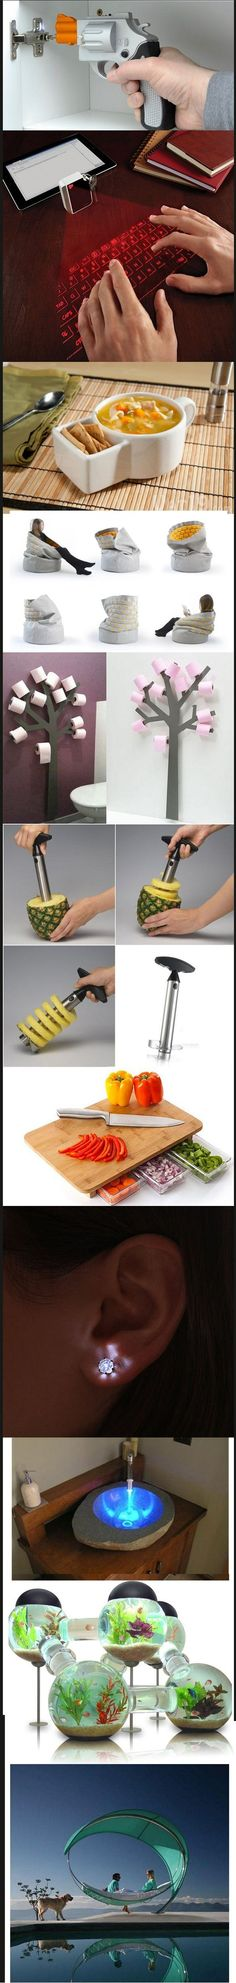 Super duper cool inventions. I WANT the tp tree and fish tank!